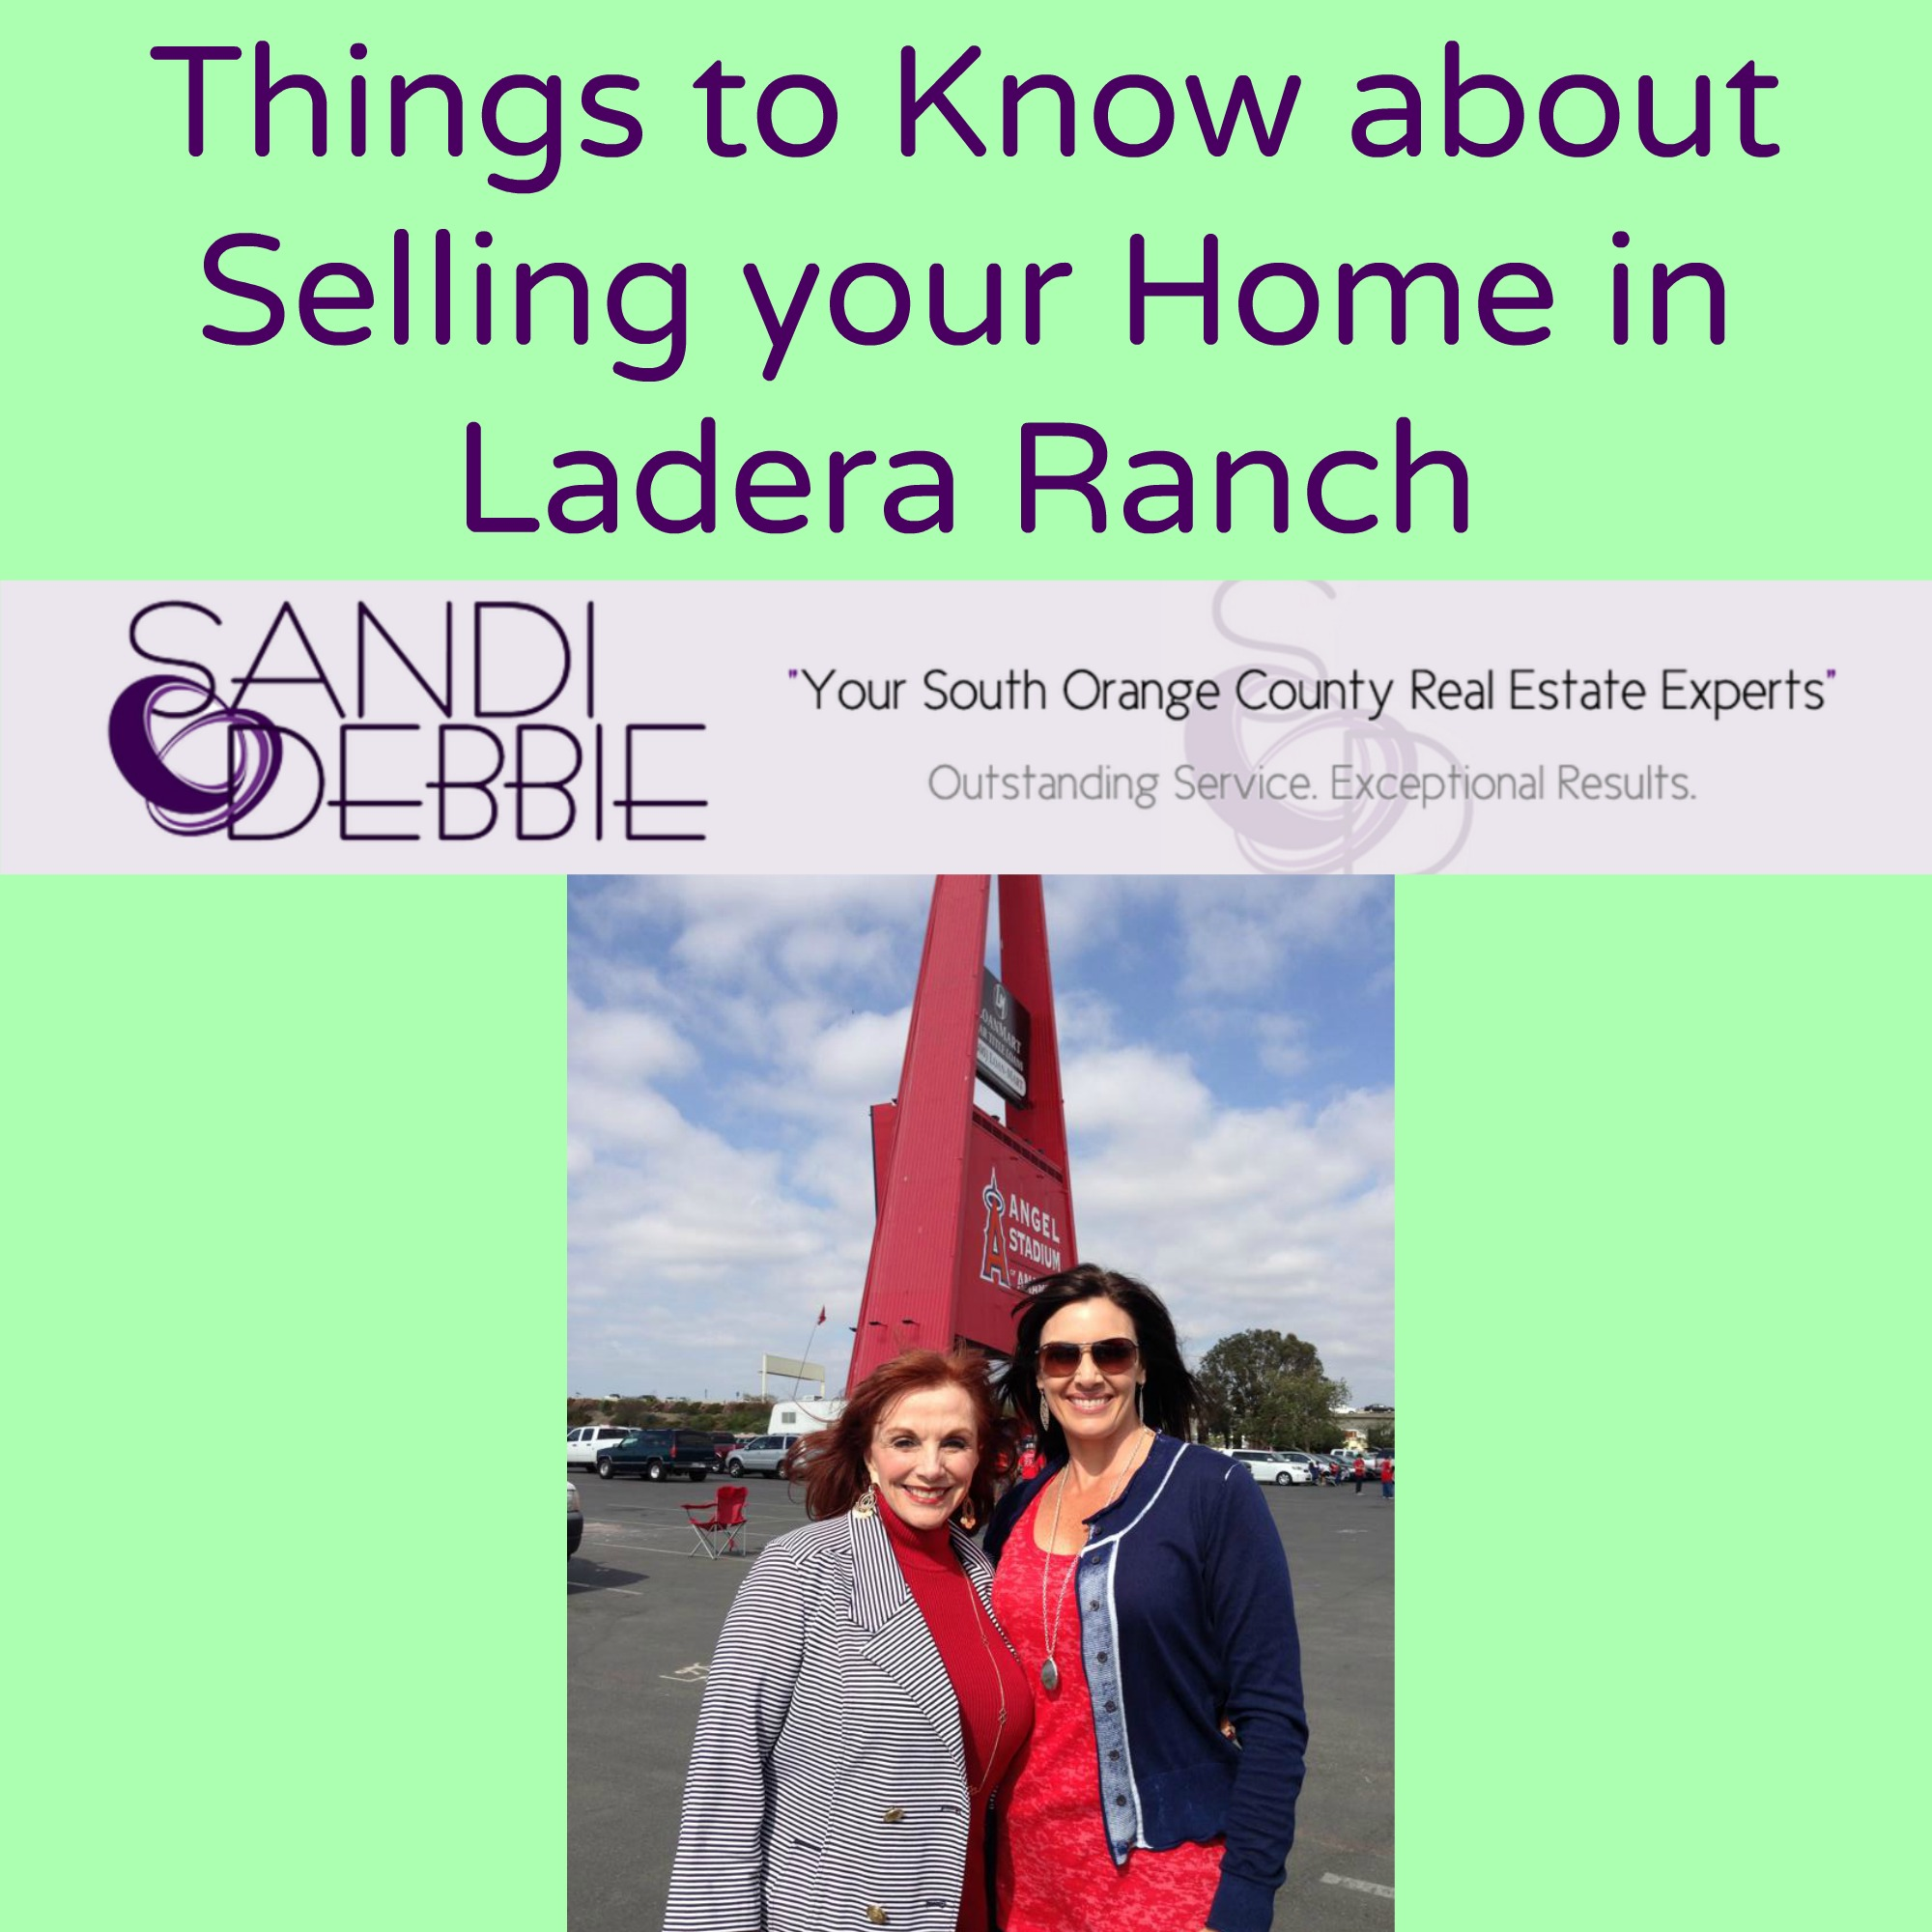 4 Things to Know about Selling your Home in Ladera Ranch